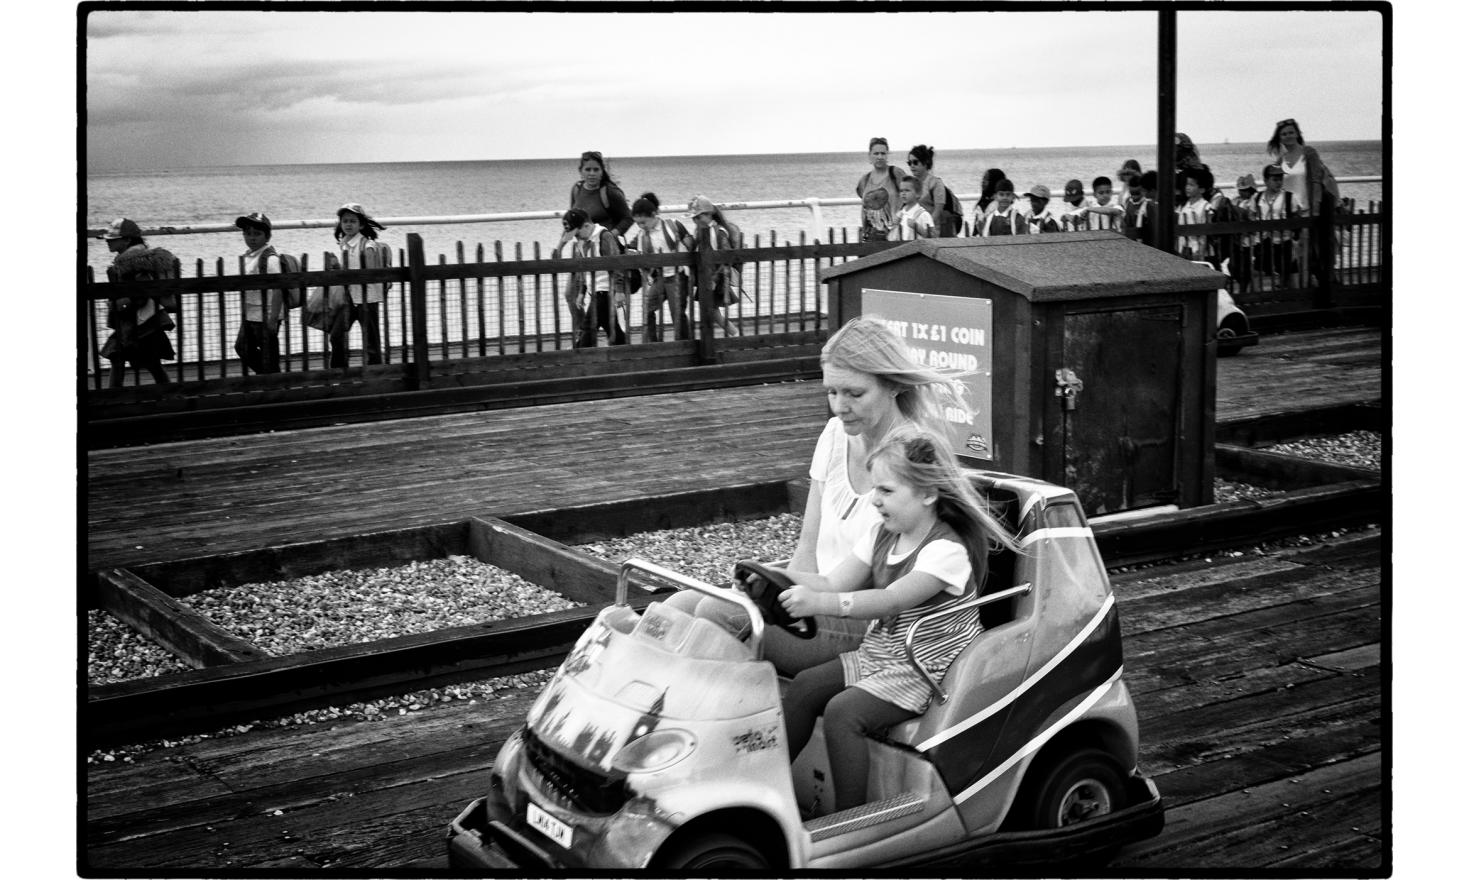 Driving school on the pier. Clacton on sea, England. July 2016